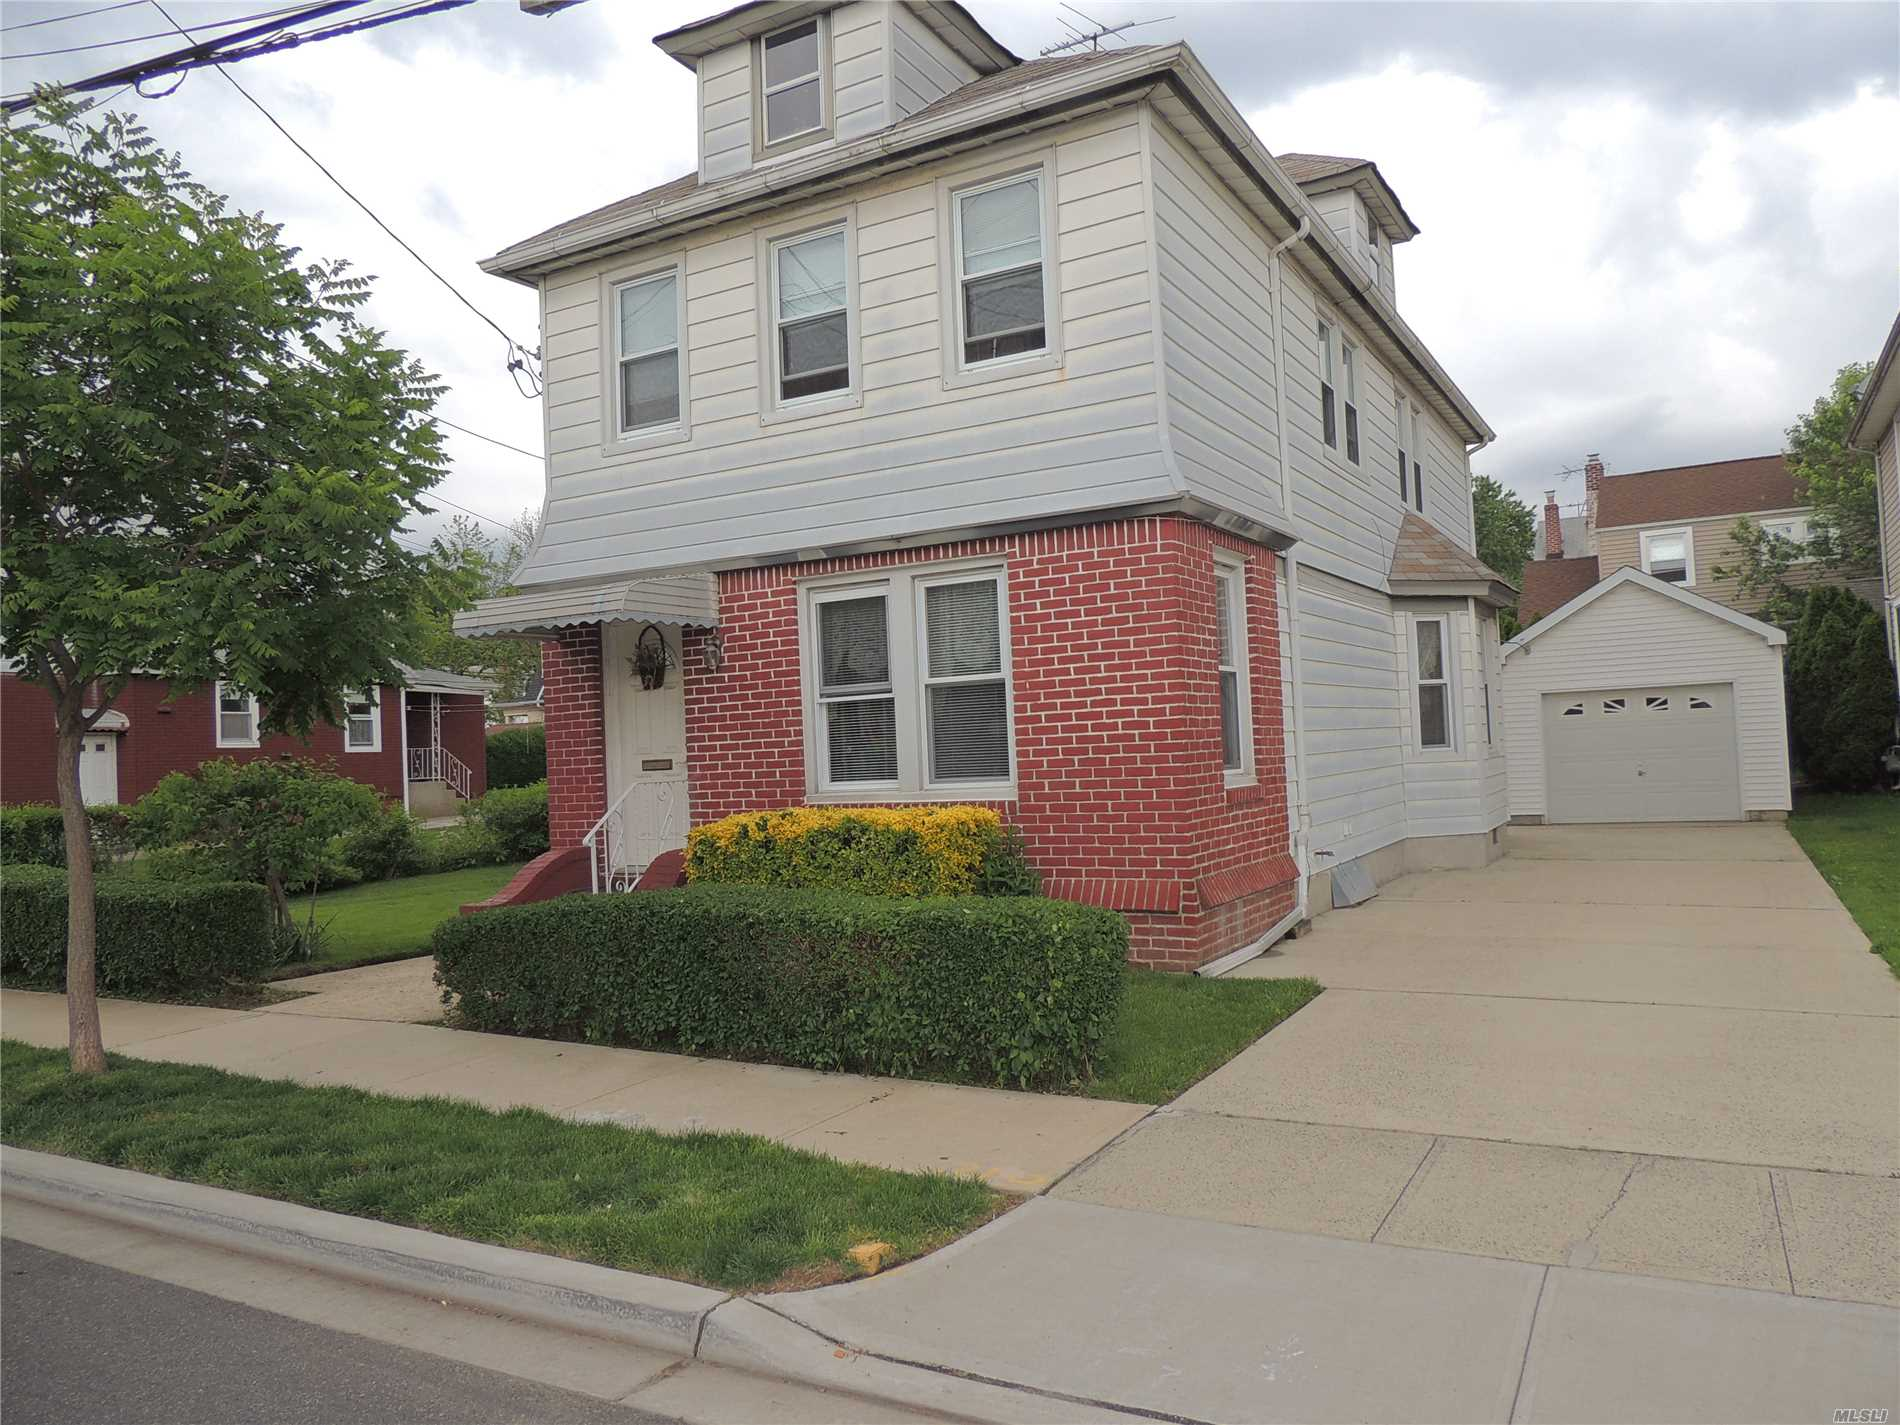 Property for sale at 105 Charles Street, Floral Park NY 11001, Floral Park,  New York 11001